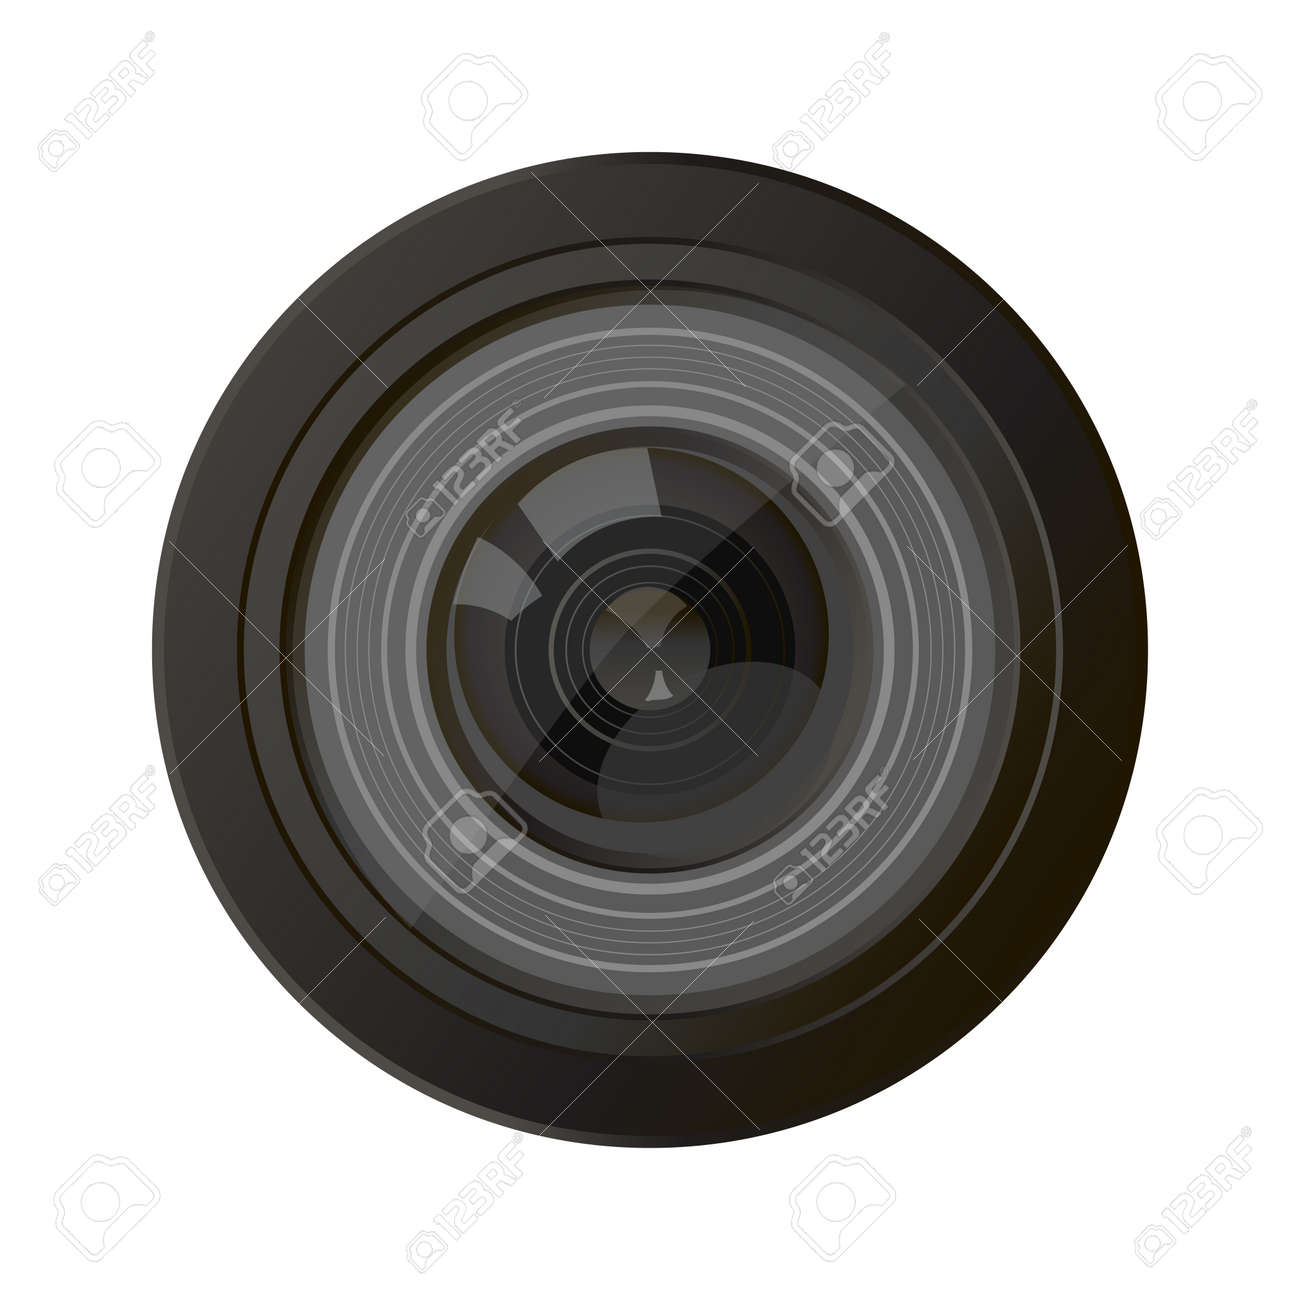 Camera photo lens, vector. A camera lens vector illustration with realistic reflections - 54474364